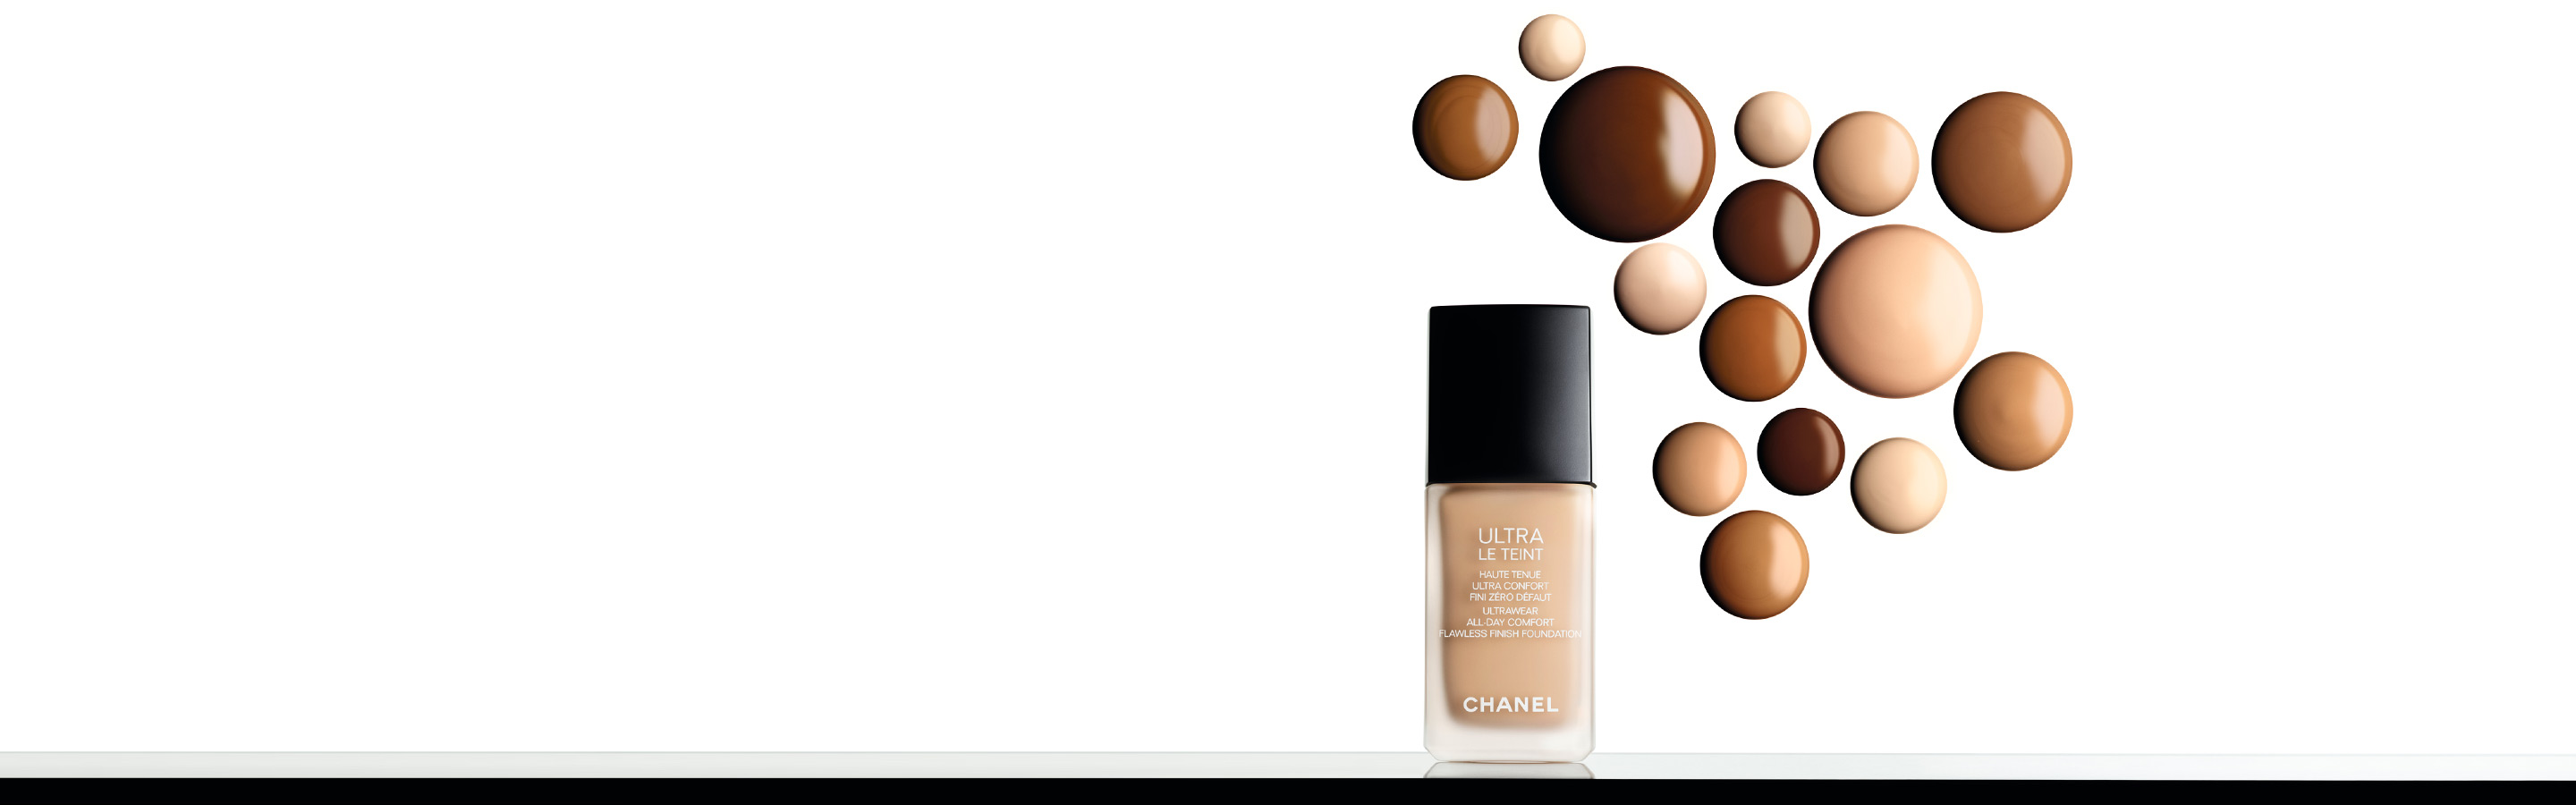 Foundations - Matte & Natural Foundations | CHANEL